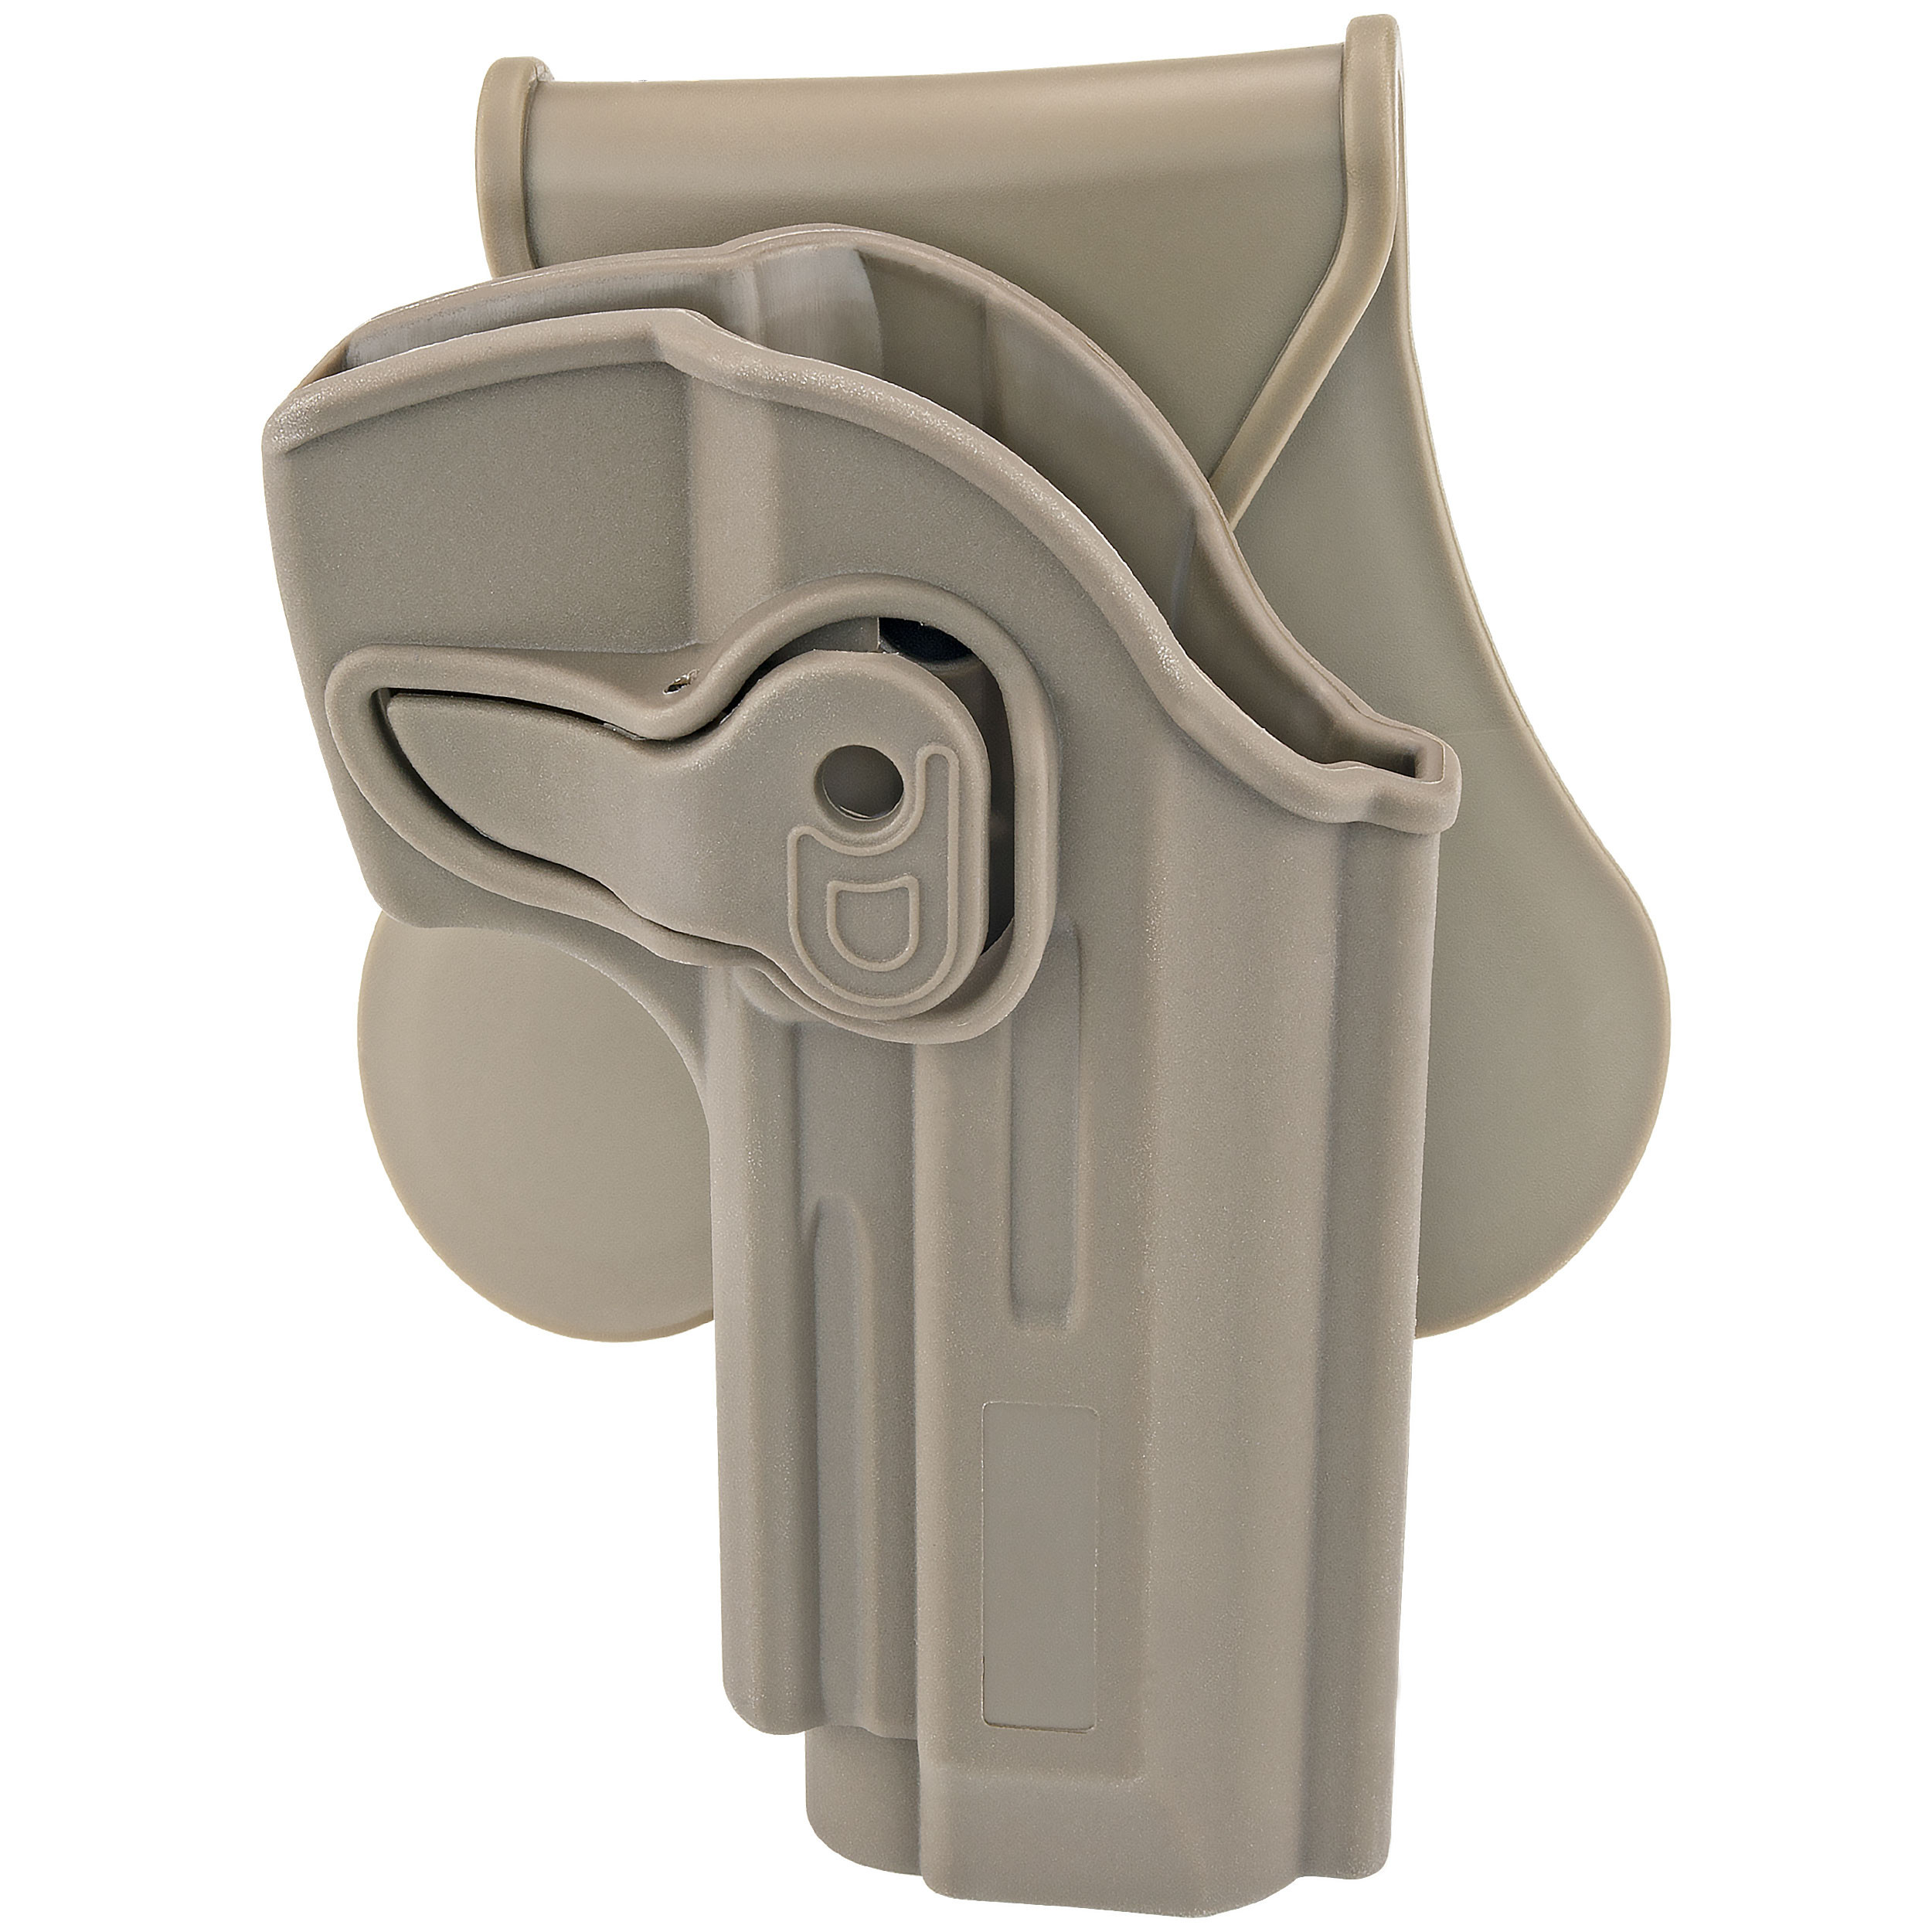 Fits Beretta 92, Beretta 92FS, GSG92, Girsan Regard MC; FDE Color